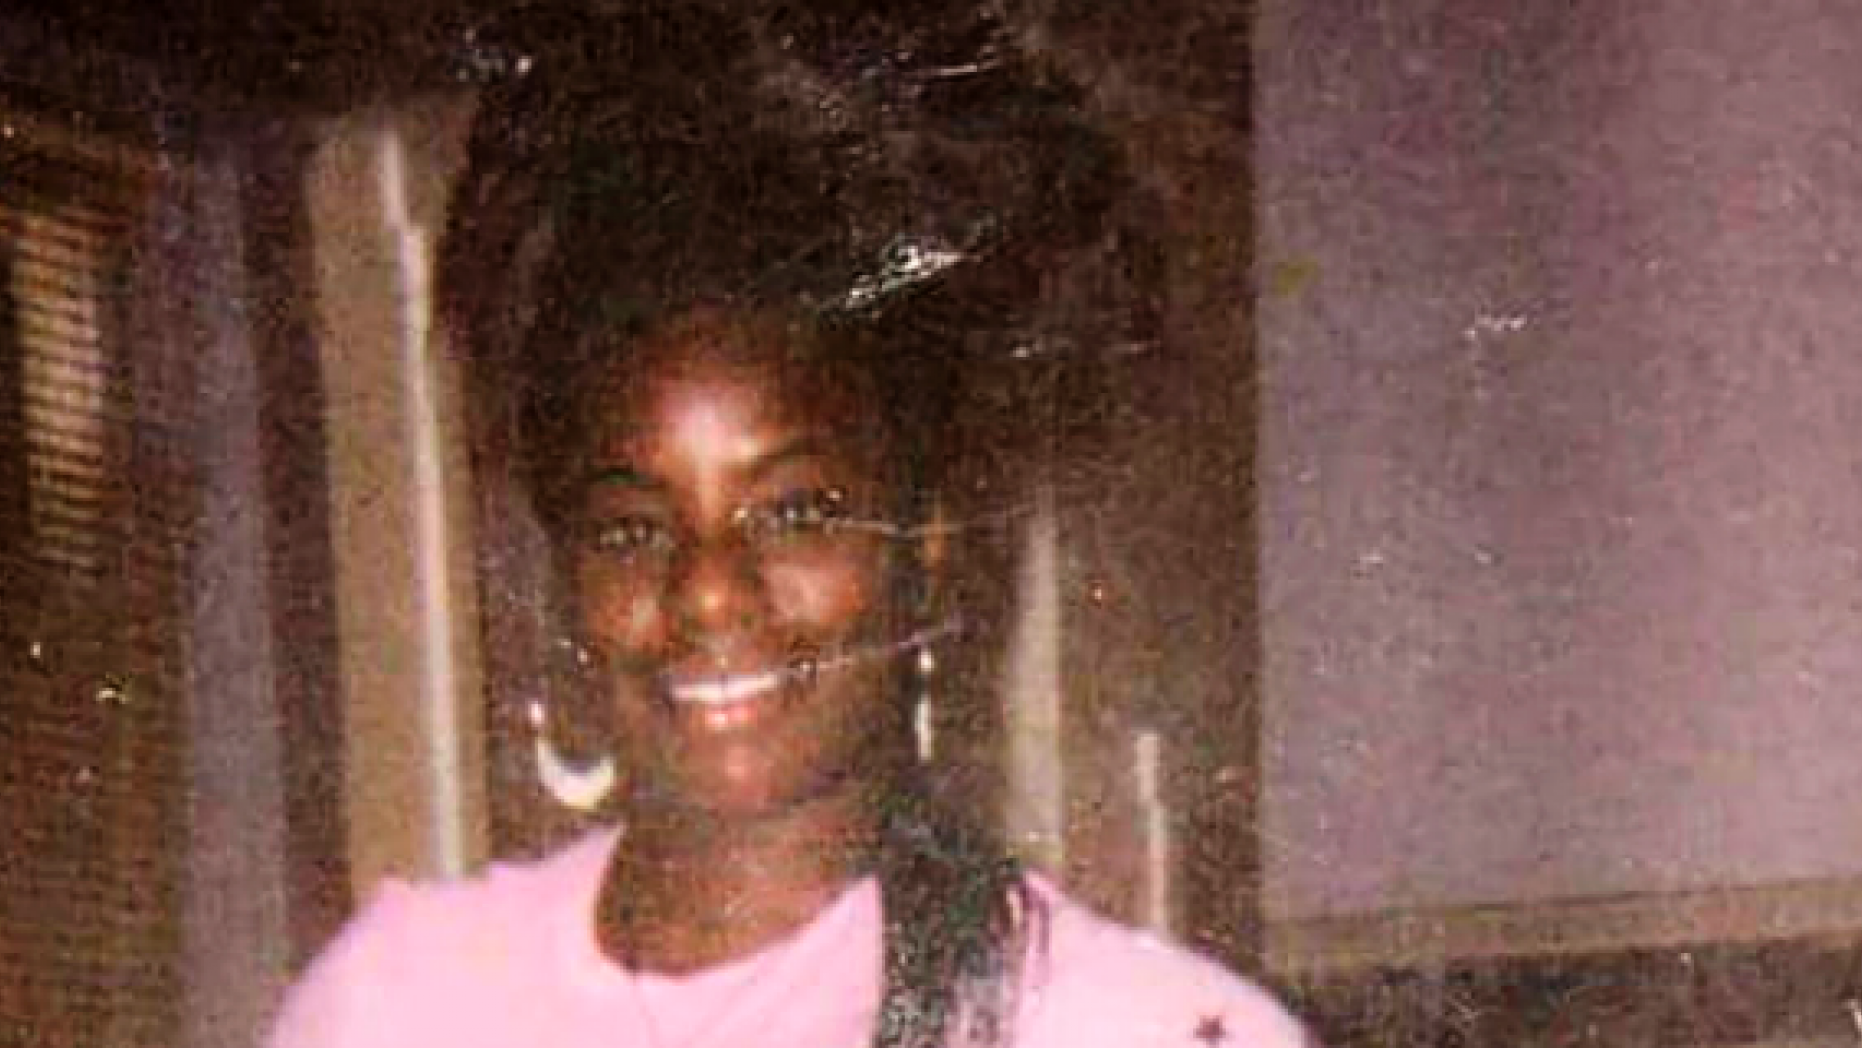 This undated family photo provided by Riccardo Holyfield shows his cousin, Reo Renee Holyfield. Her body was in a dumpster, and nobody found her for two weeks last fall. The slayings like Holyfield